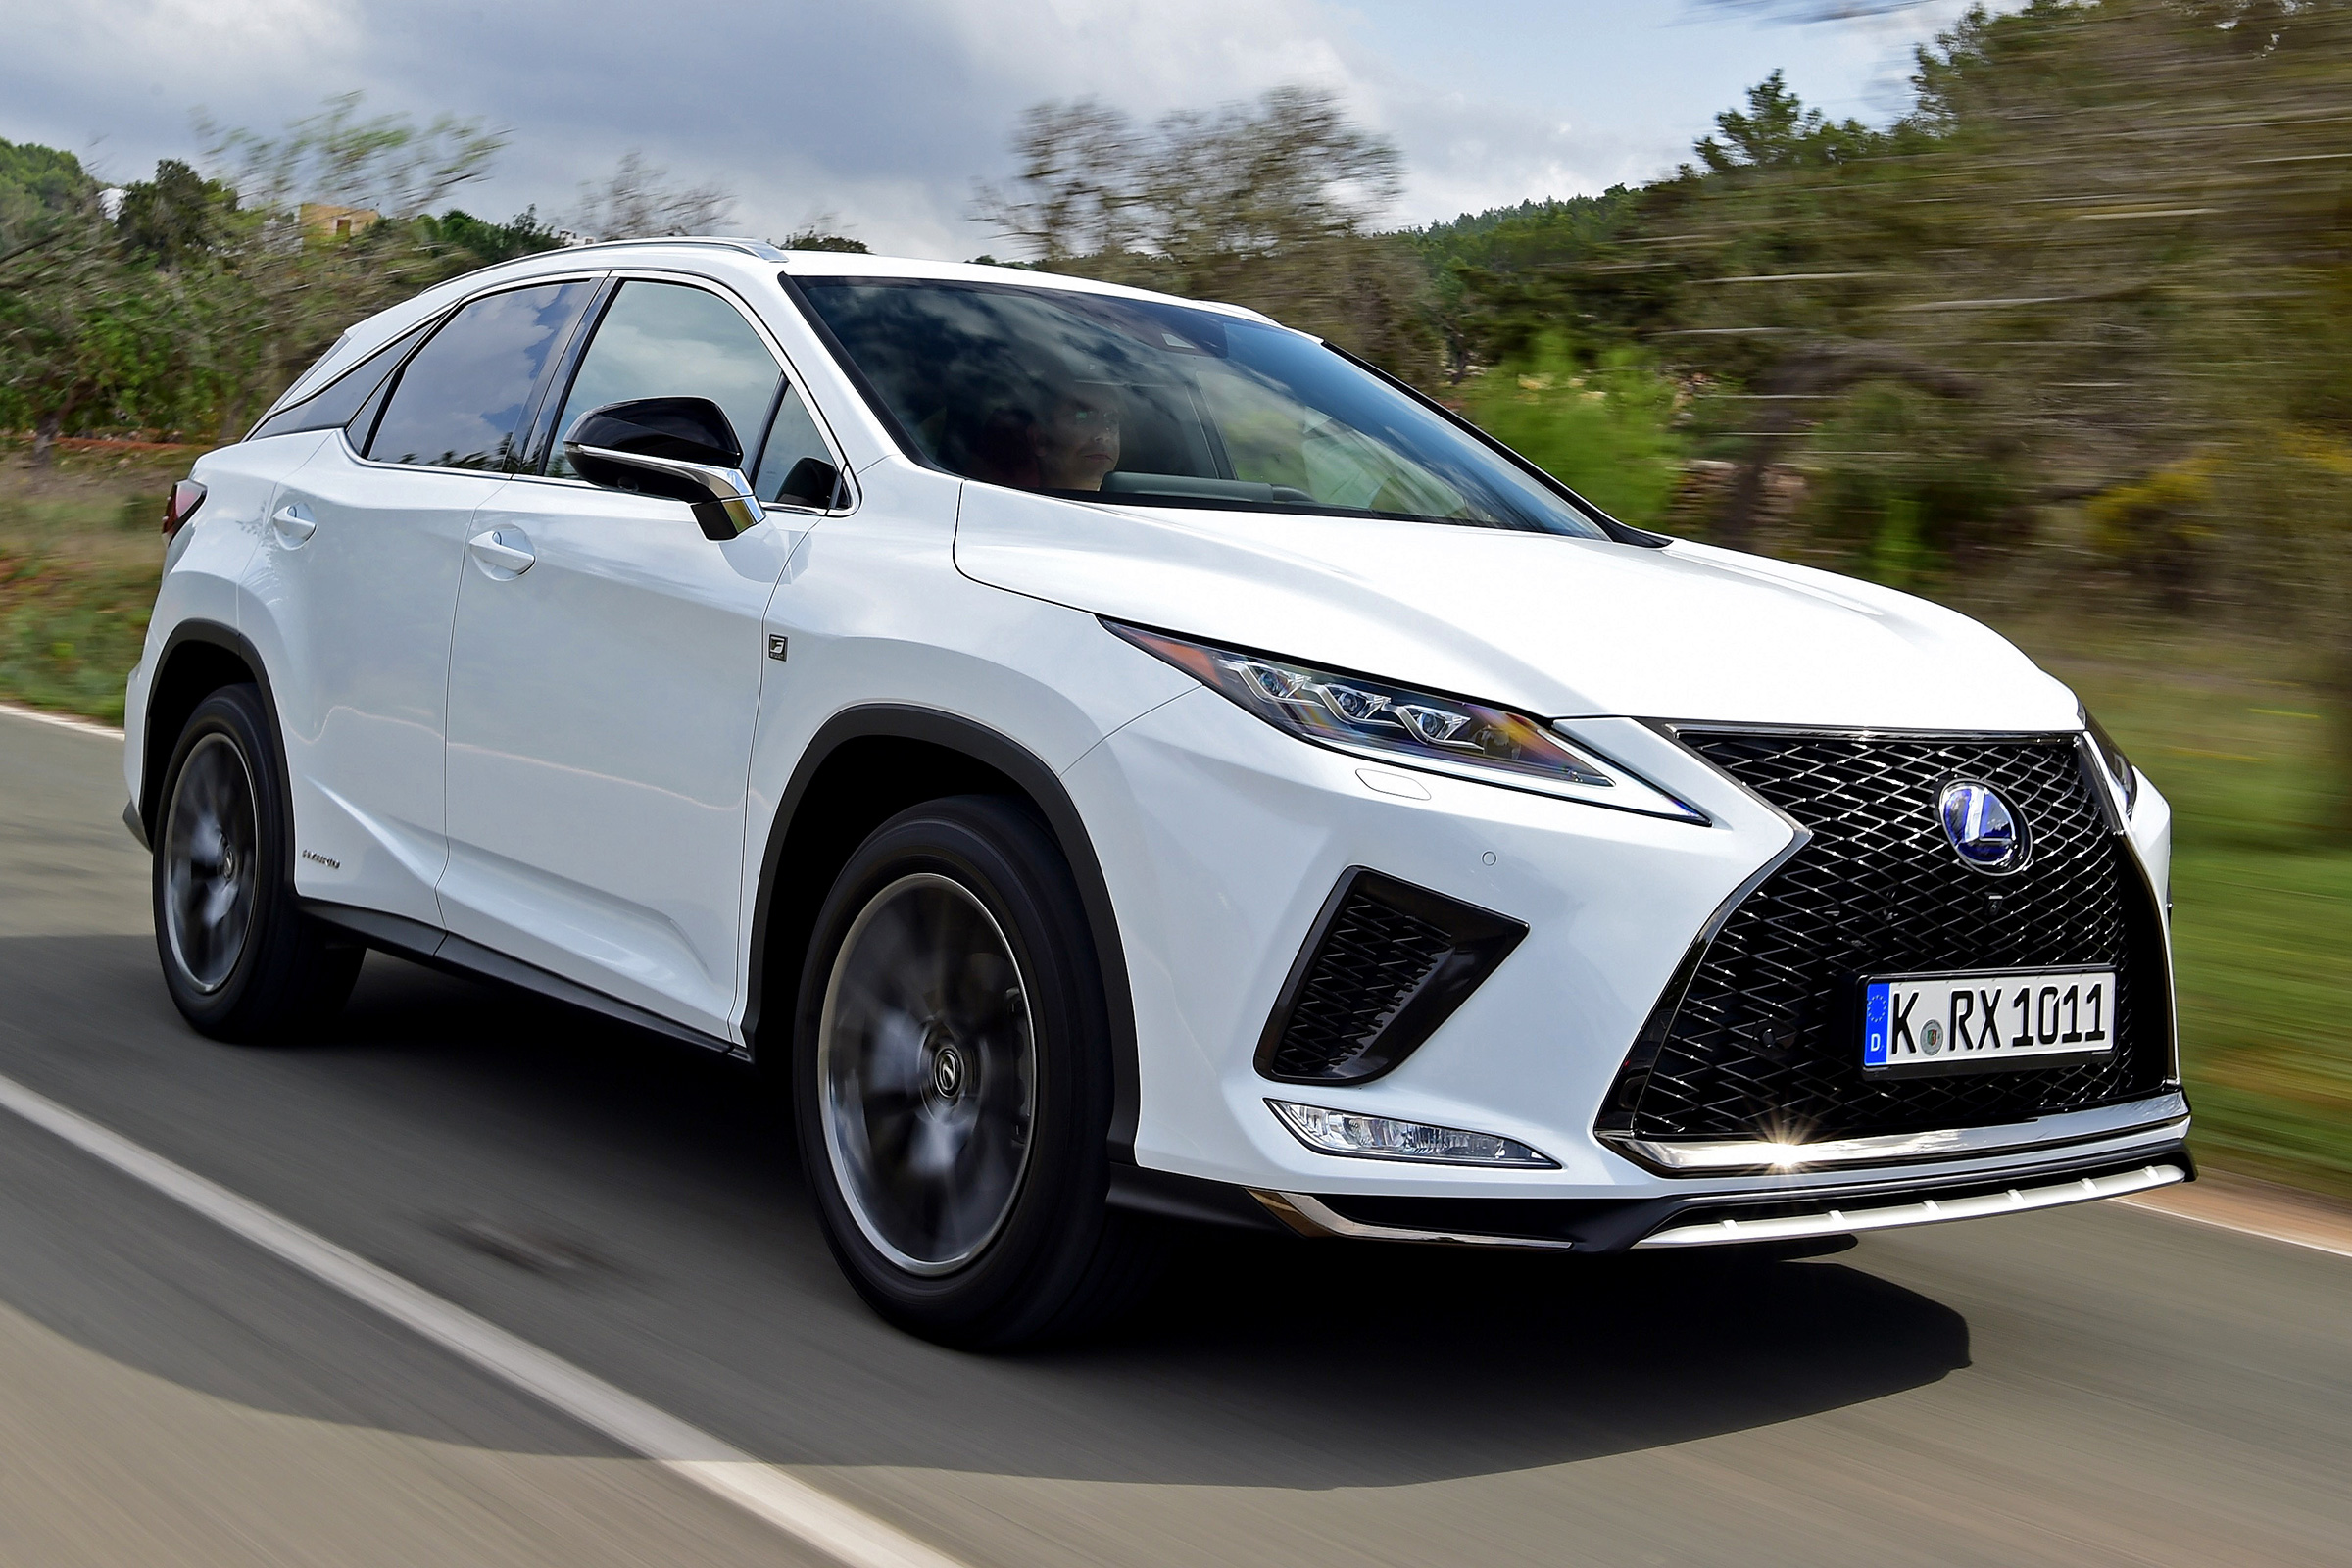 New Lexus Rx 450h F Sport 2019 Review Auto Express